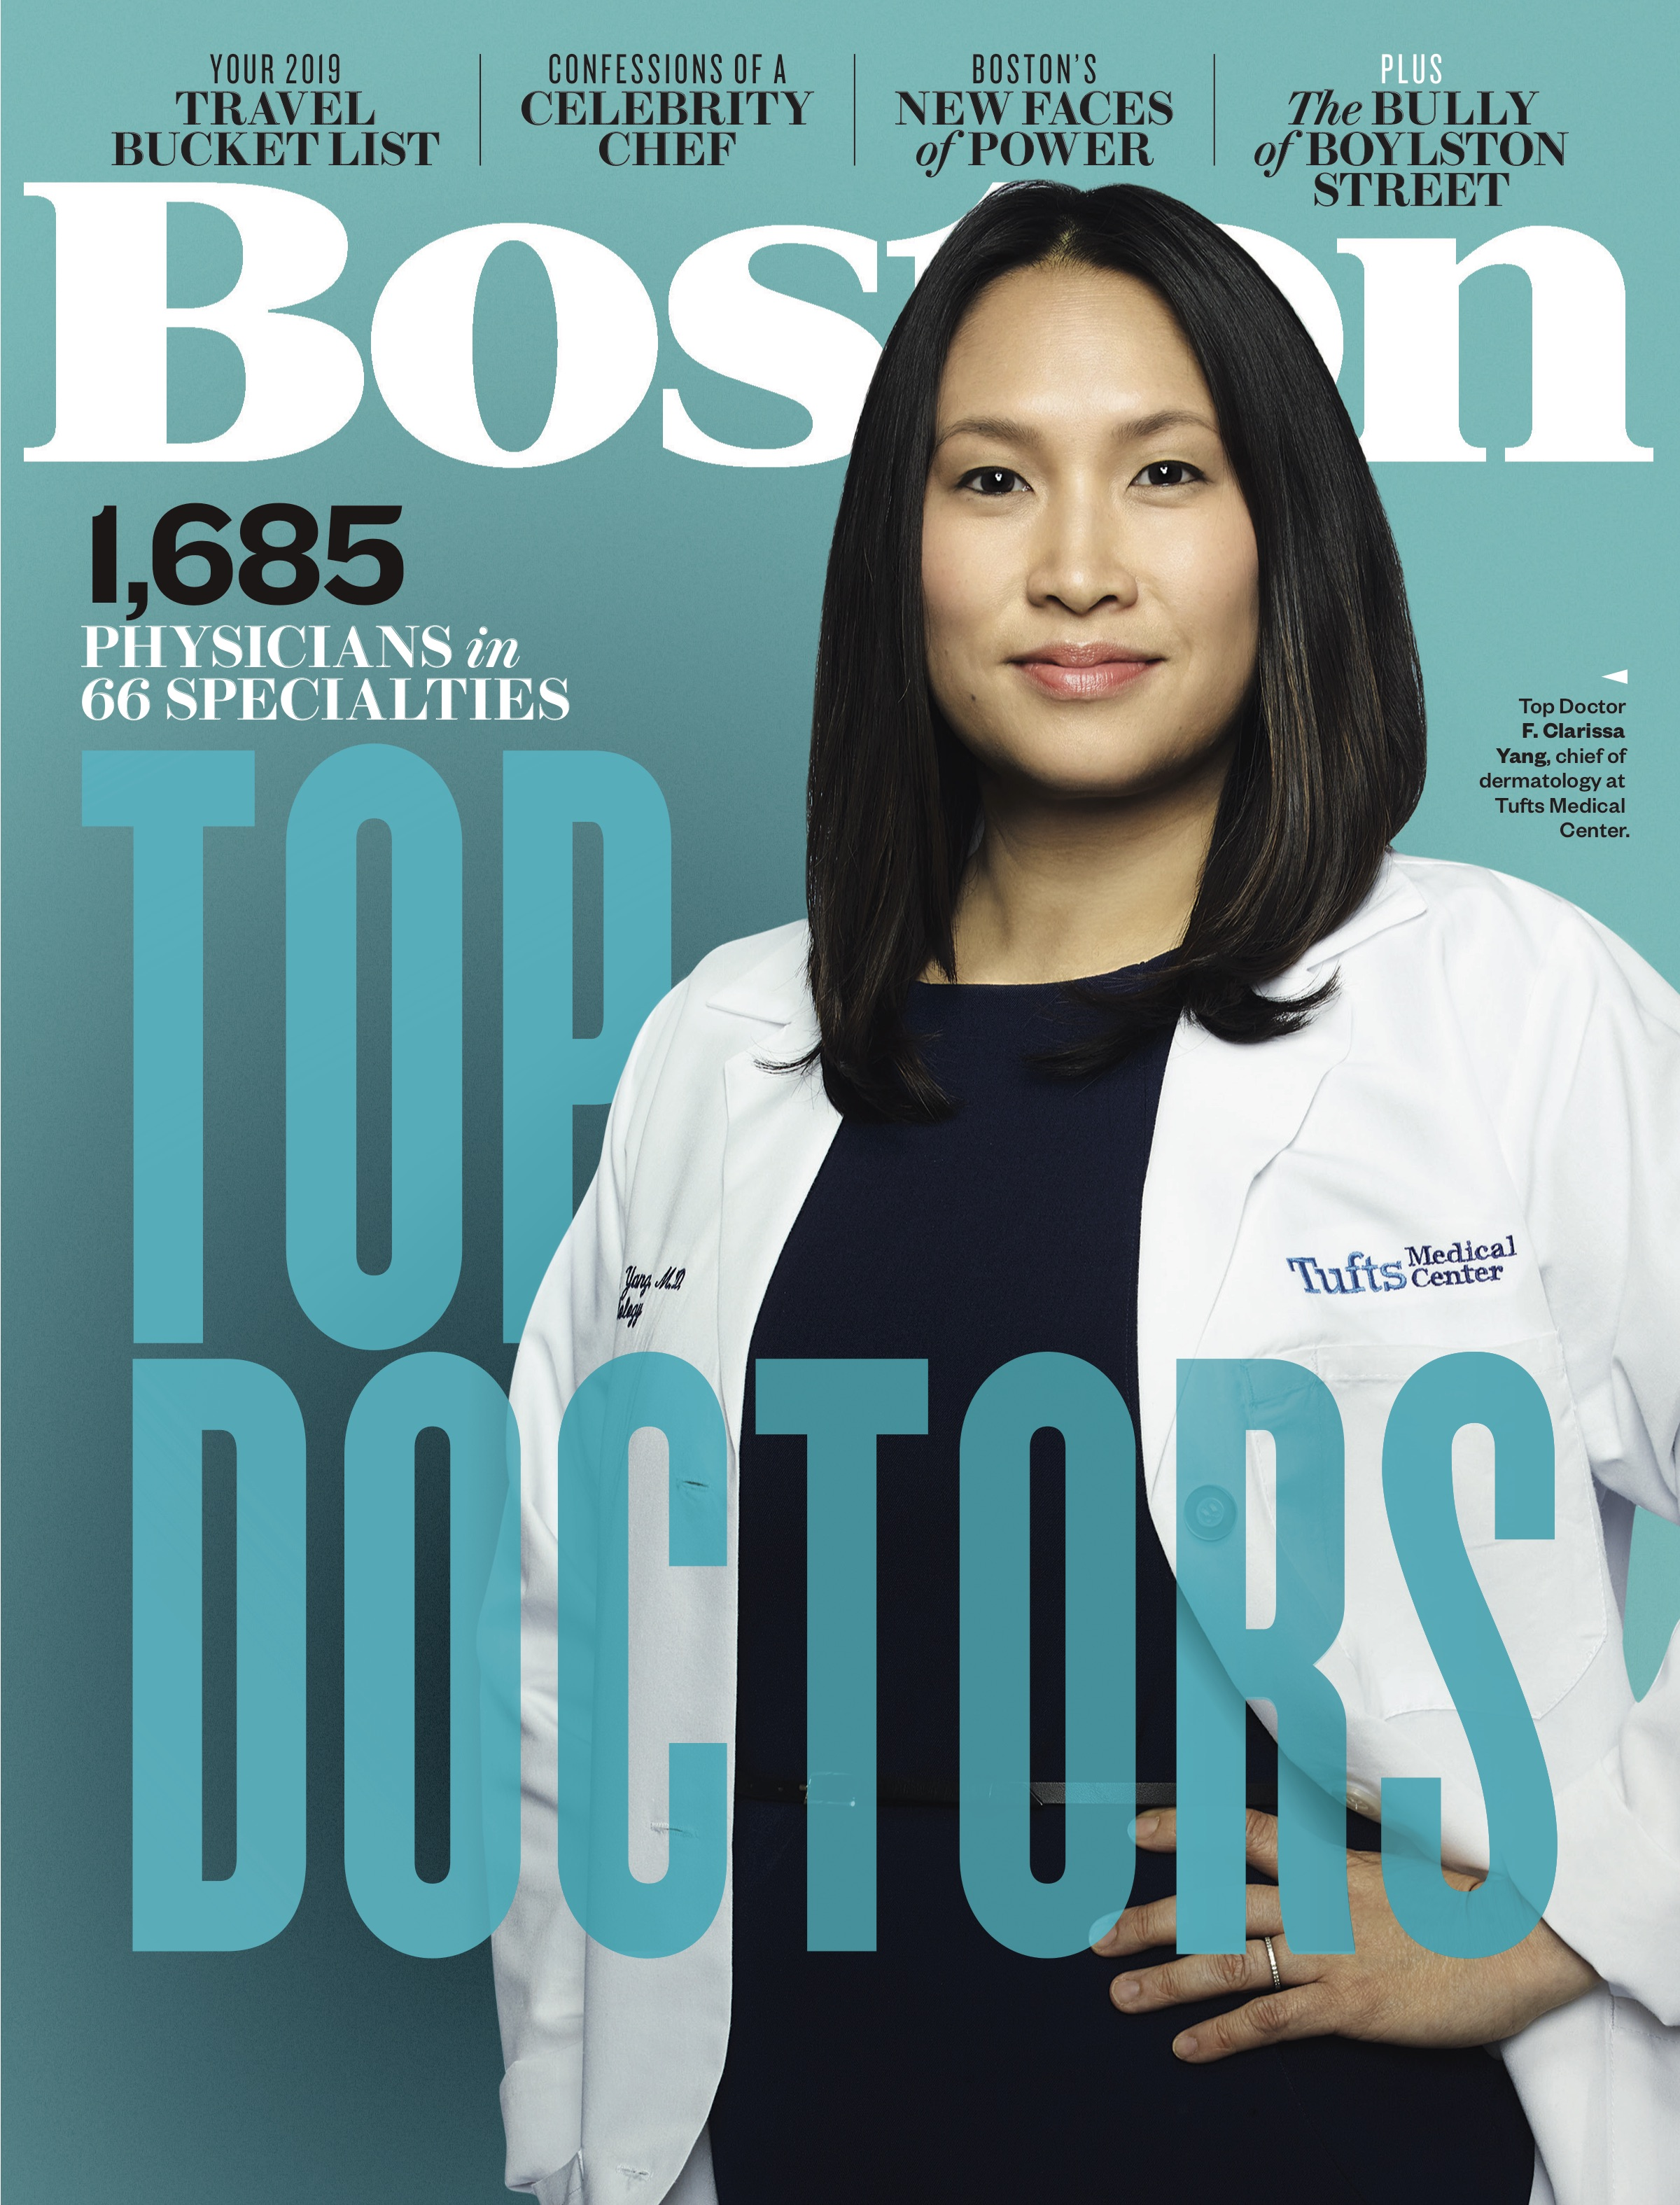 Boston Magazine    Boston  magazine Top Docs™. Dr. Helena Taylor is selected among the Best plastic surgeons in Boston and top doctors in 2017 by her medical peers.   read full article